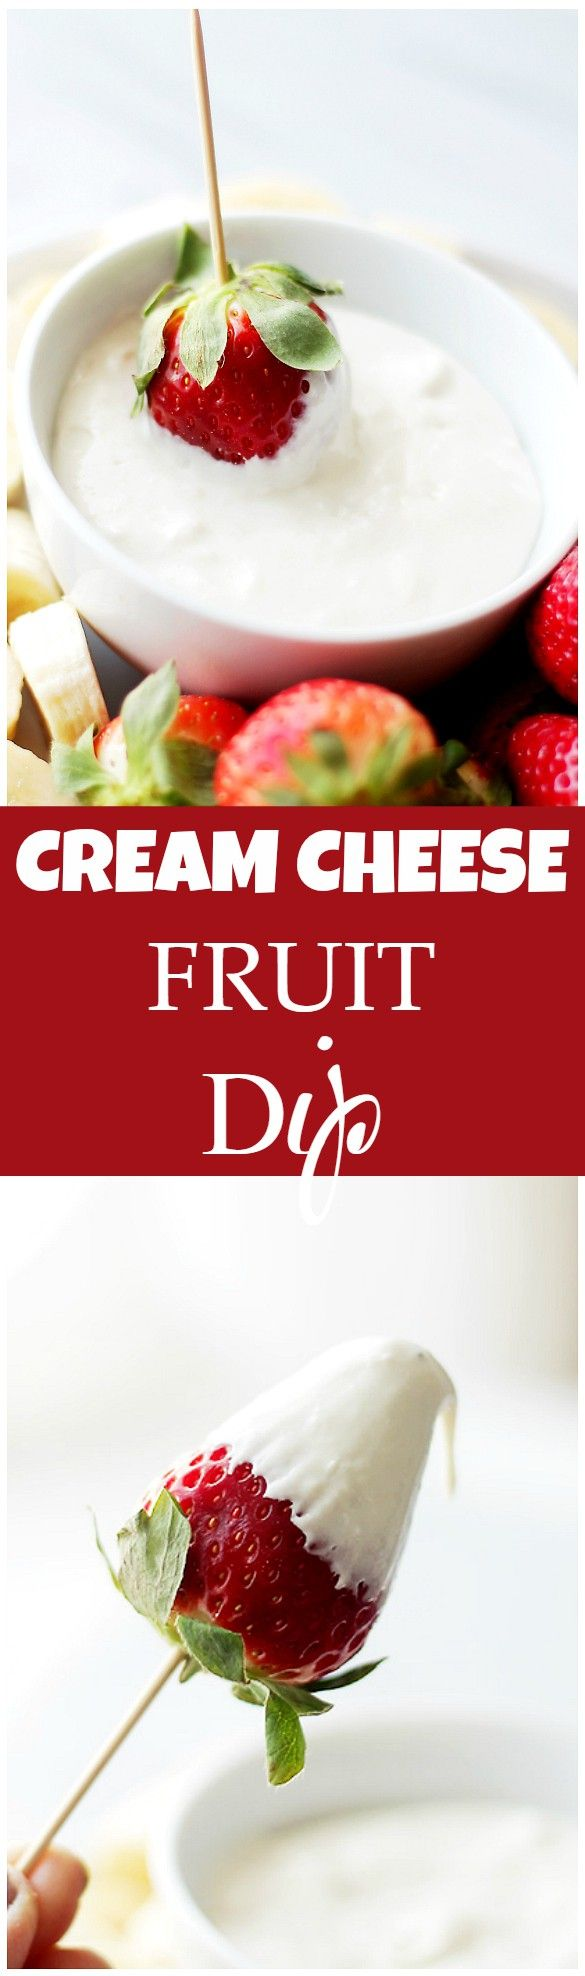 Cream Cheese Fruit Dip - Delicious, lightened-up creamy fruit dip made with cream cheese and plain yogurt. Simple, yet SO GOOD!